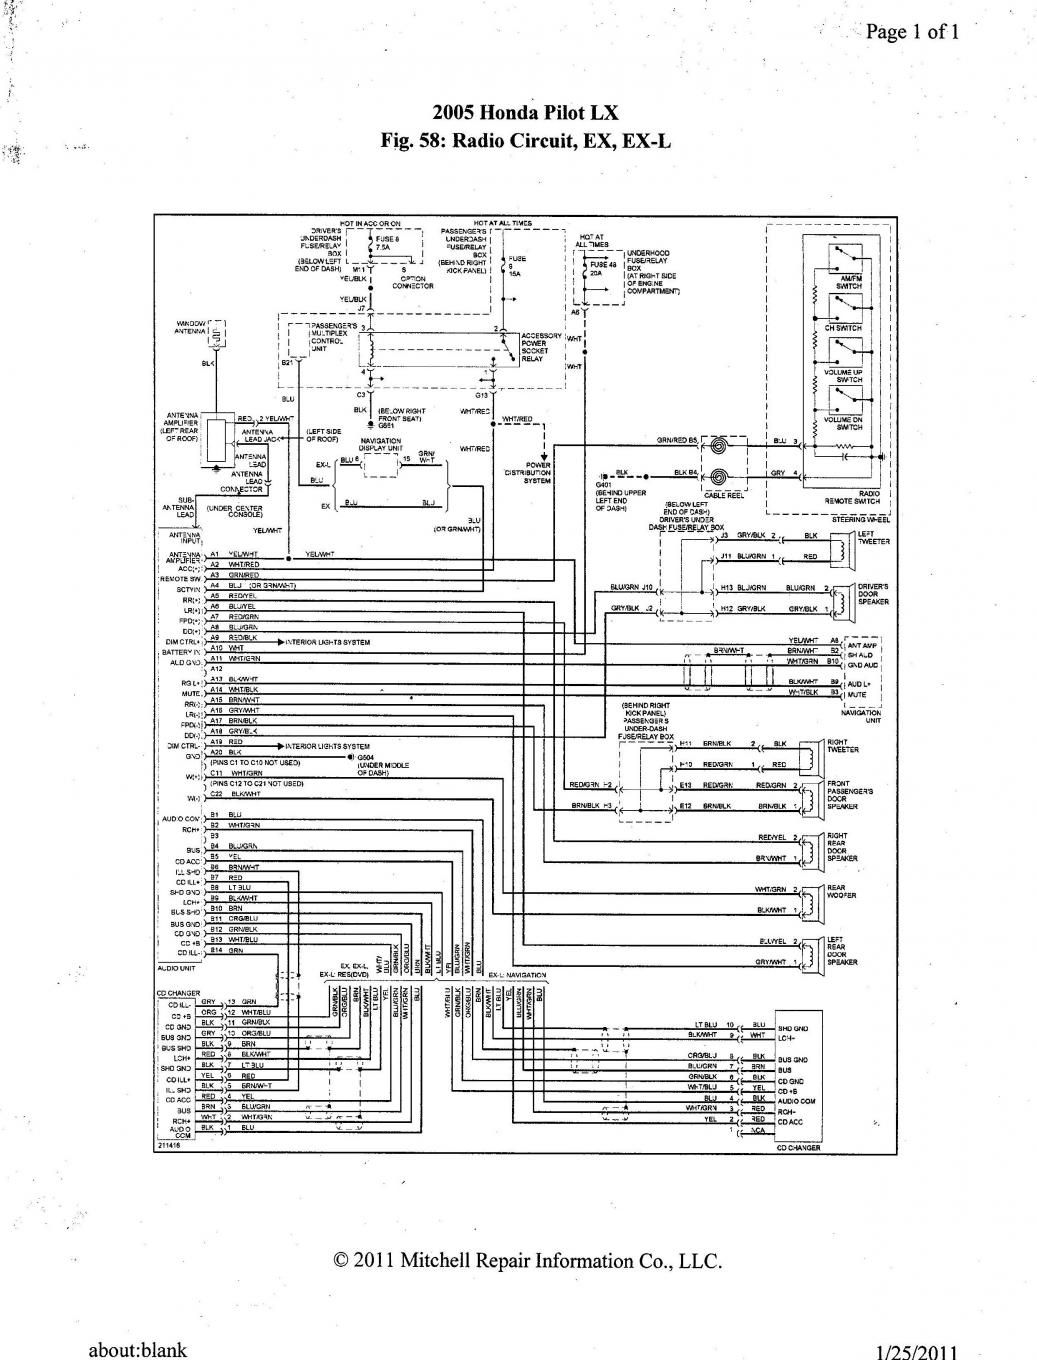 2003 Honda Crv Wiring Diagrams | Wiring Liry on electric window repair, motor wiring diagram, locks wiring diagram, electric window switch, fan wiring diagram, a/c wiring diagram, heater wiring diagram, radio wiring diagram, door wiring diagram, throttle body wiring diagram, electric window assembly, alarm wiring diagram, sensor wiring diagram, fuse wiring diagram, car audio wiring diagram, battery wiring diagram, abs wiring diagram, transmission wiring diagram, electrical wiring diagram, lights wiring diagram,